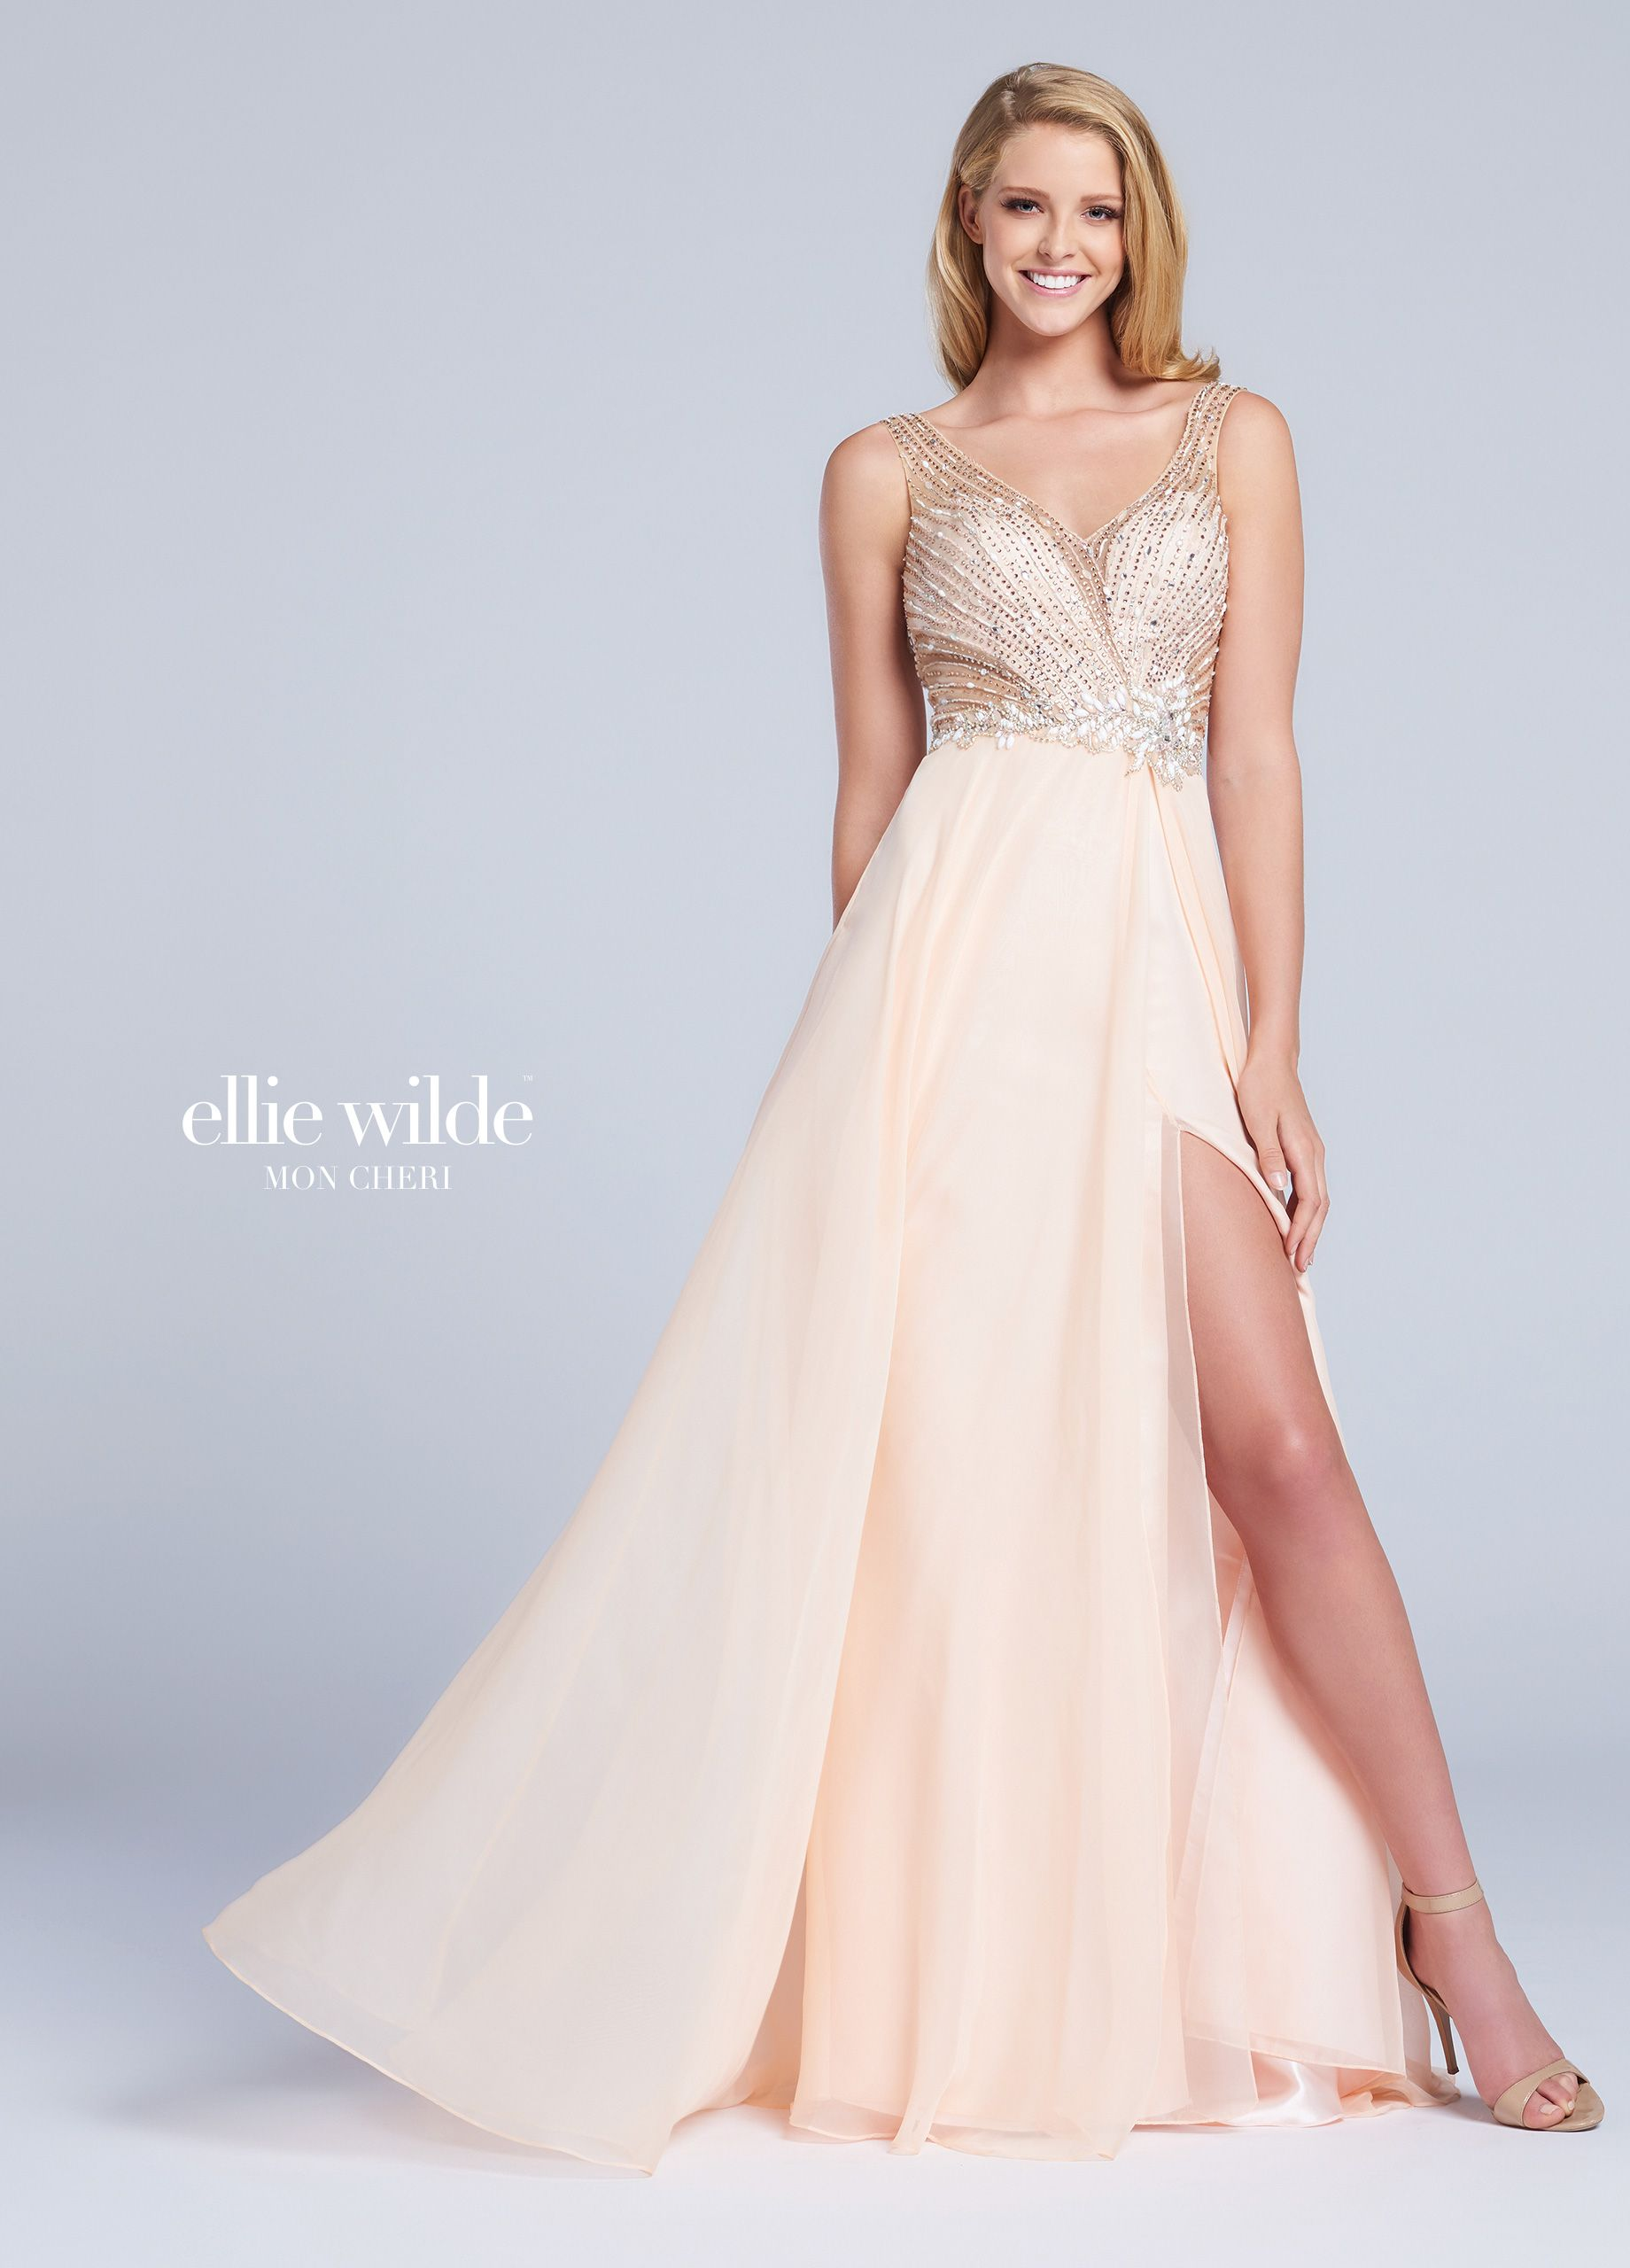 a80e8ea1d11c Ellie Wilde EW117015 - Sleeveless chiffon A-line gown with embellished deep  V-neckline bodice, keyhole back, full skirt with side slit.